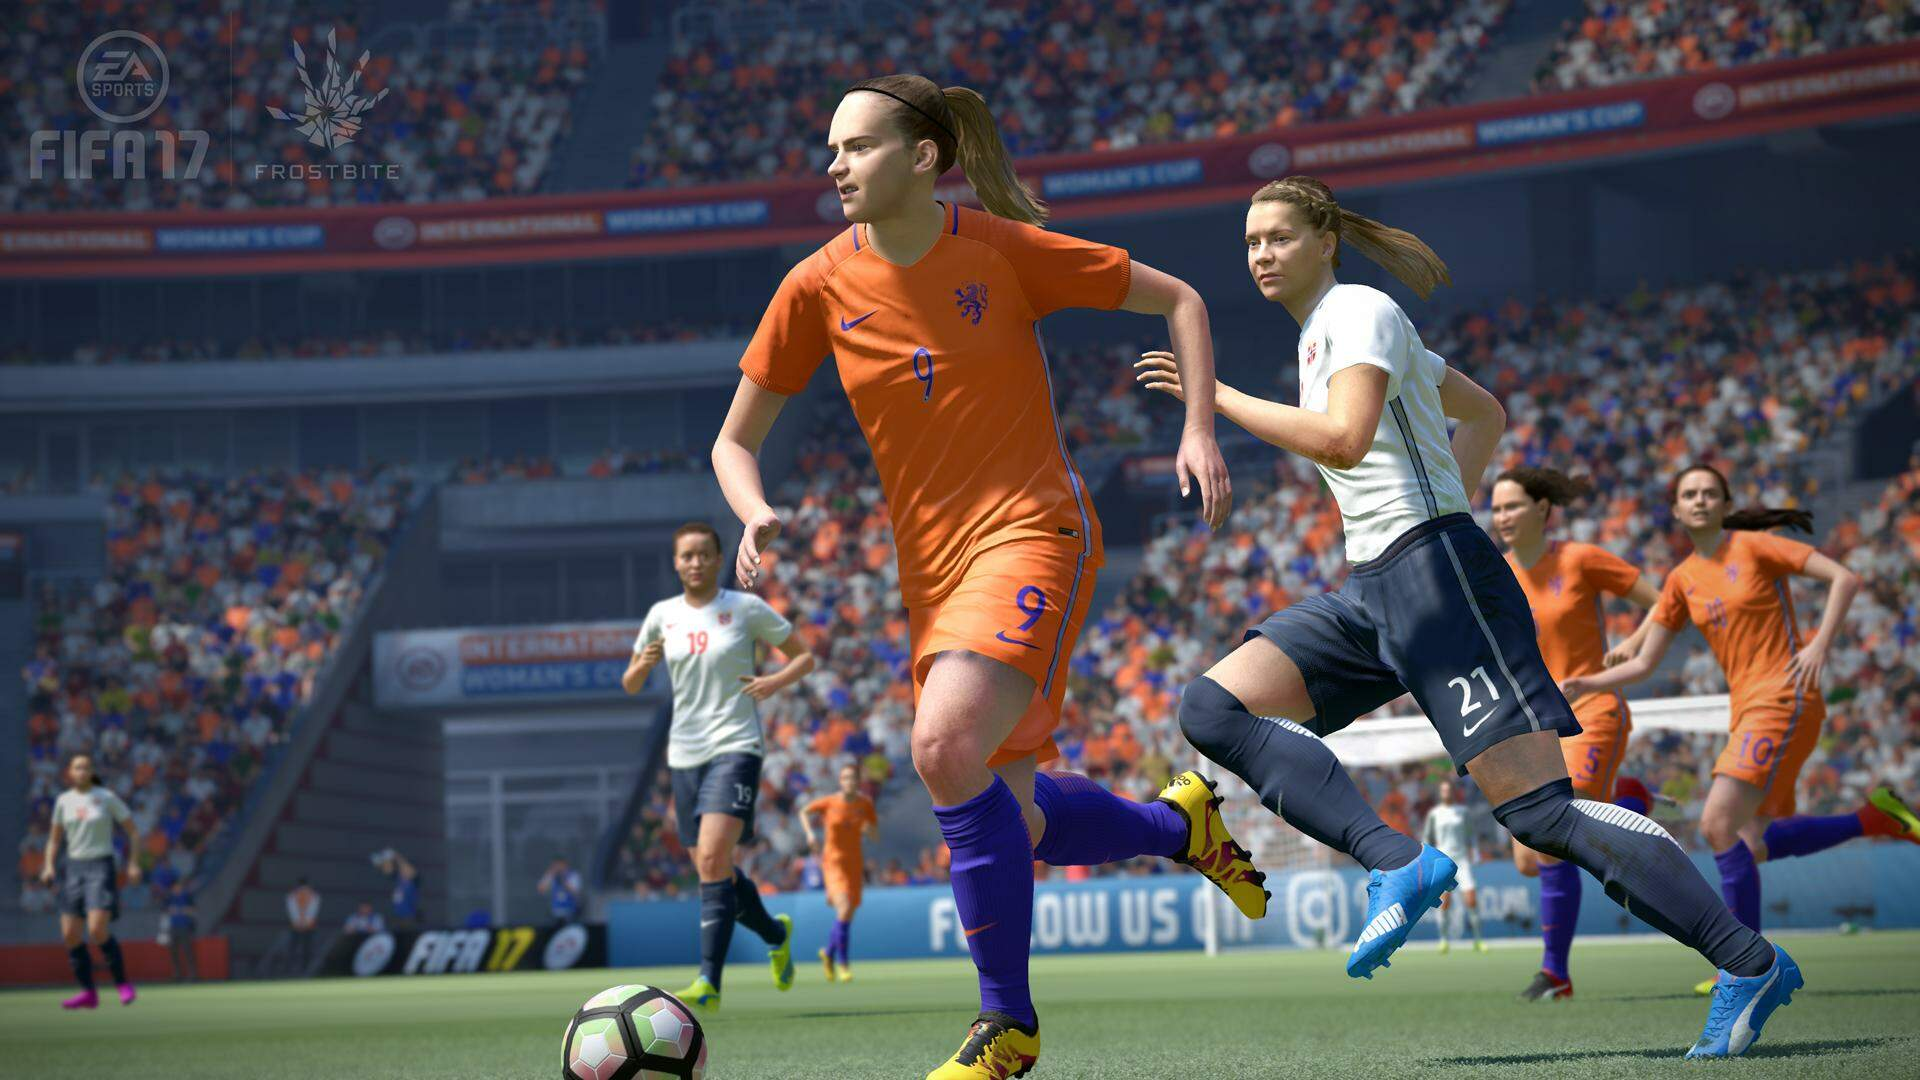 FIFA 17 - The Best Players at Passing and the Best Women's Teams